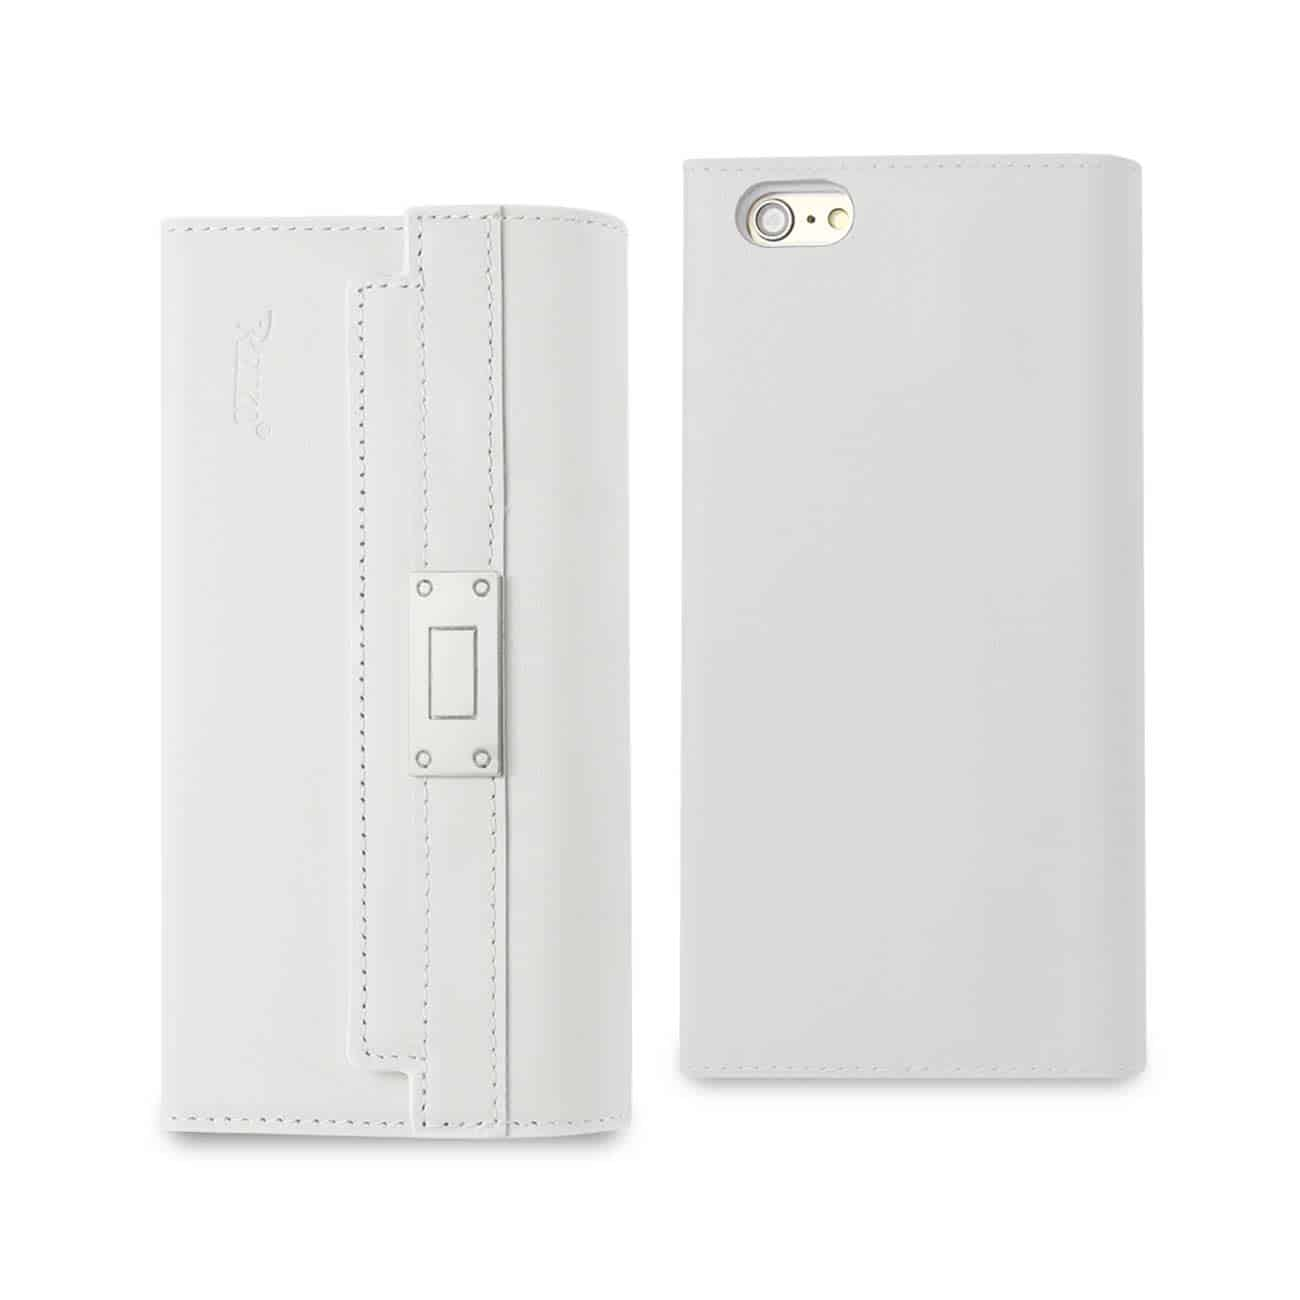 IPHONE 6S PLUS GENUINE LEATHER RFID WALLET CASE AND METAL BUCKLE BELT IN IVORY